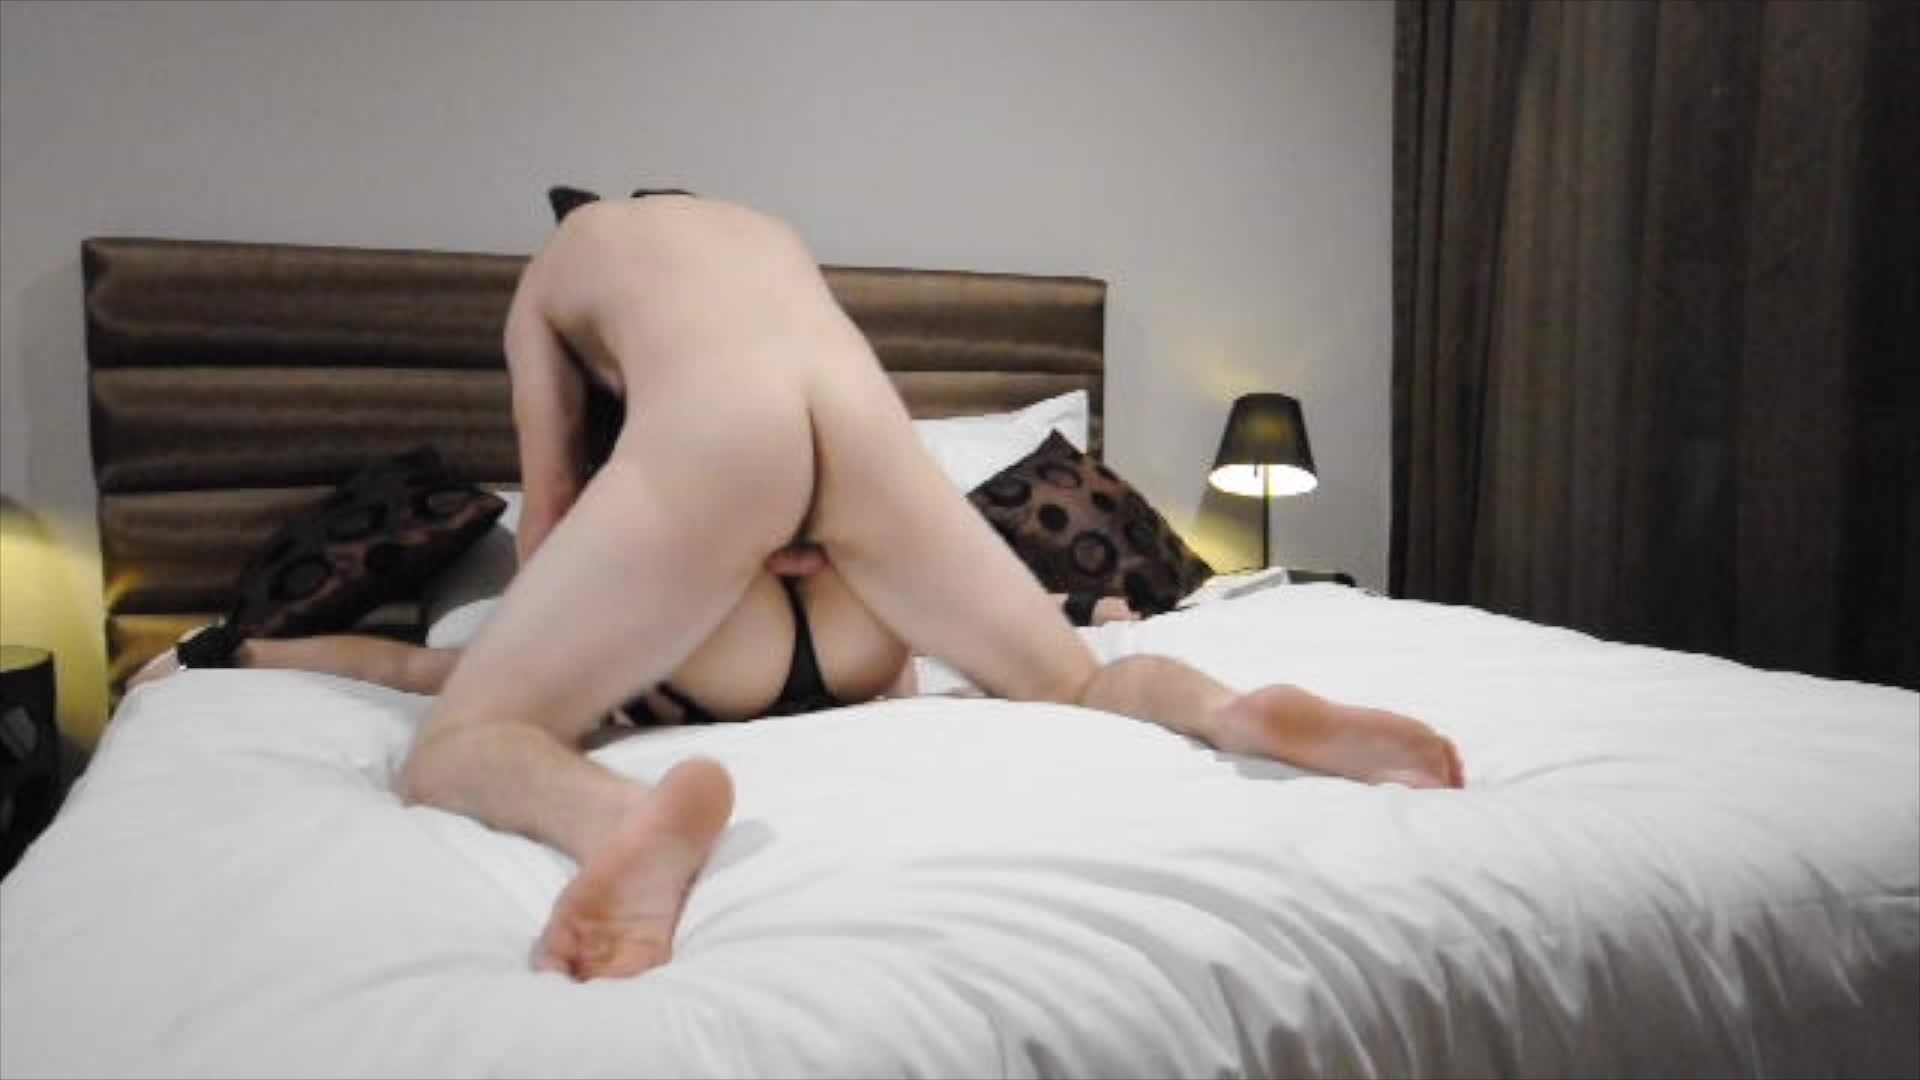 Horny Girlfriend Tied Up and Teased